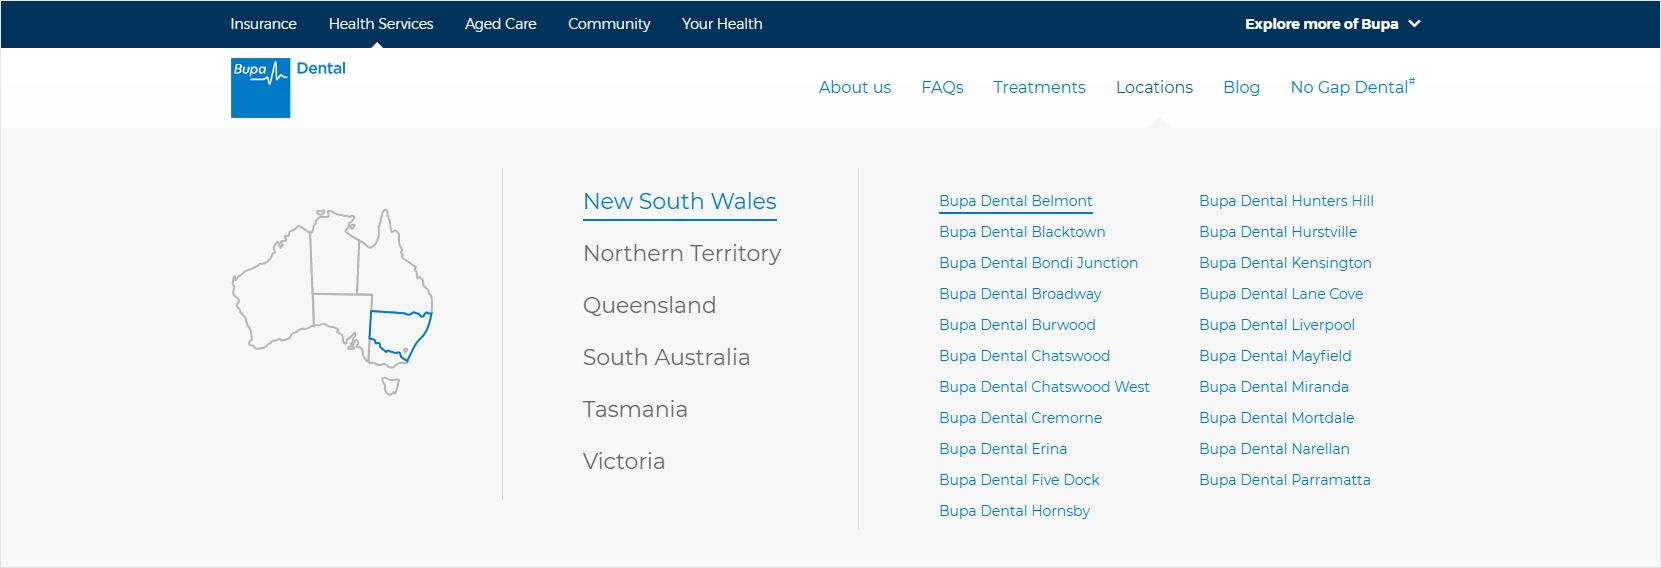 Bupa Dental Mega Menu Locations